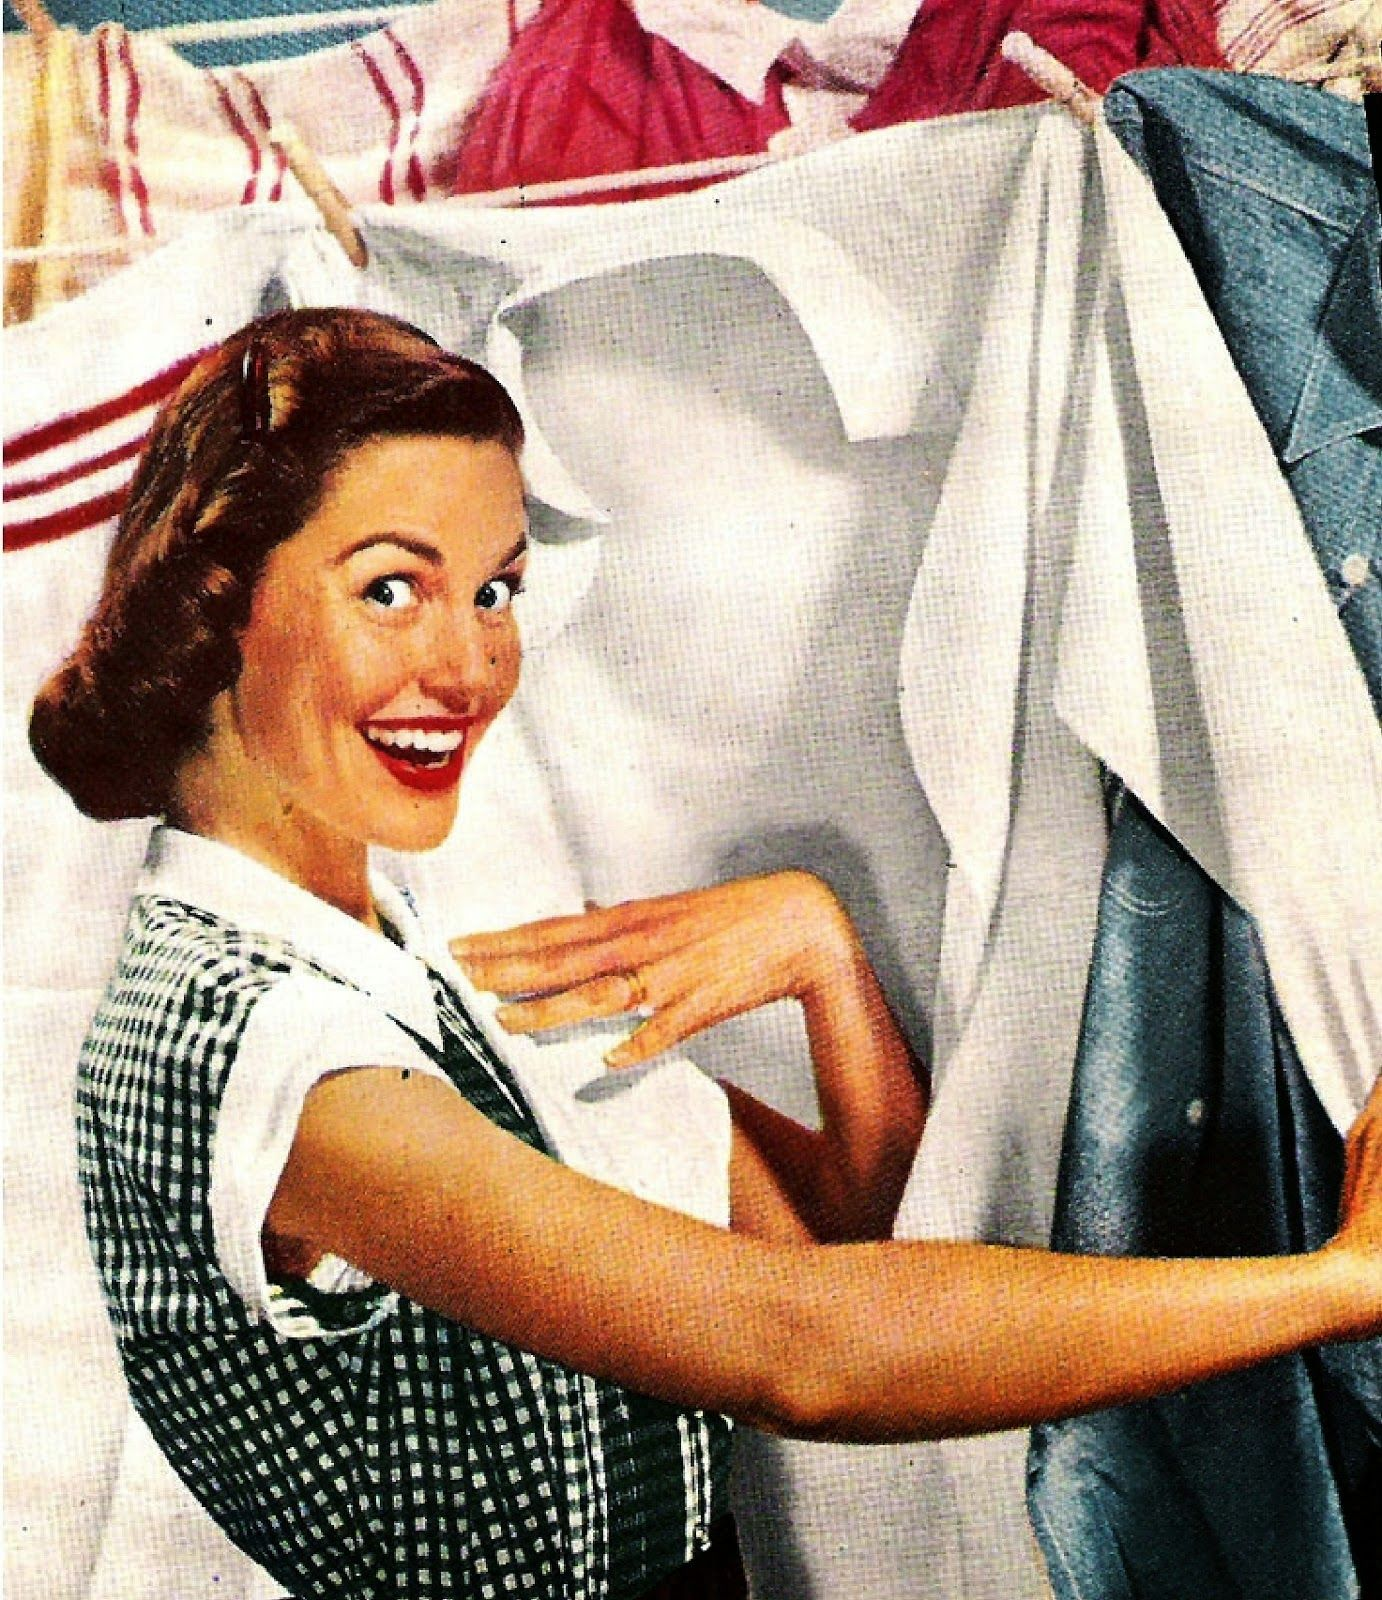 We rely on our Laundry Appliances daily. If you don't think so, just wait until one breaks and then see what kind of a fix you're in.  We rely so heavily on these appliances, but do we take as good care of them as they take care of us?